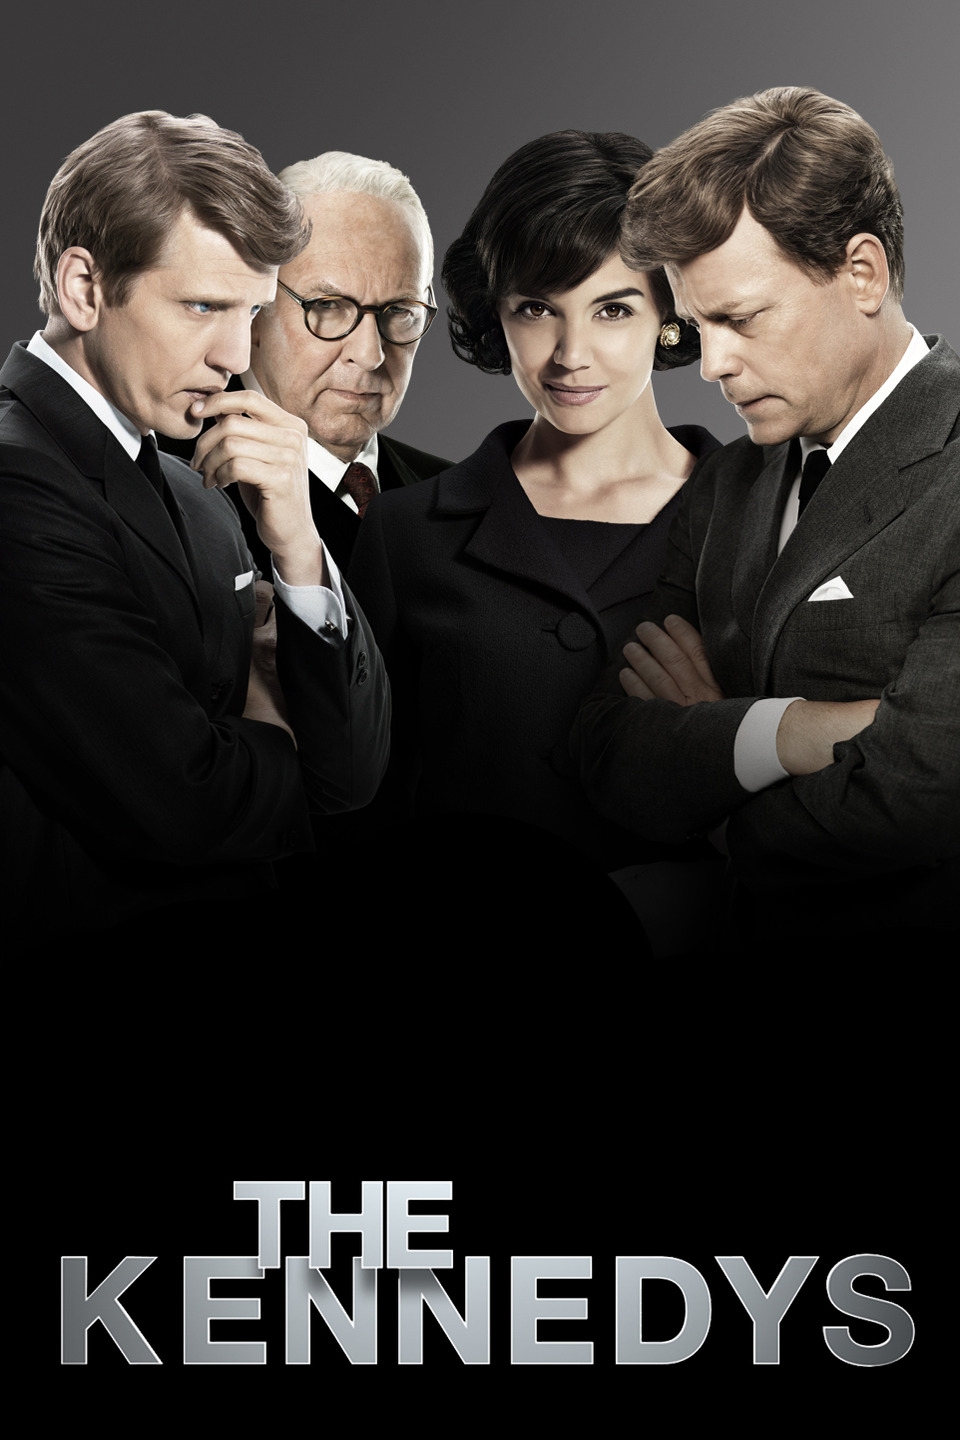 The Kennedys Television Series Poster - The ReelzChannel & Muse Distribution International